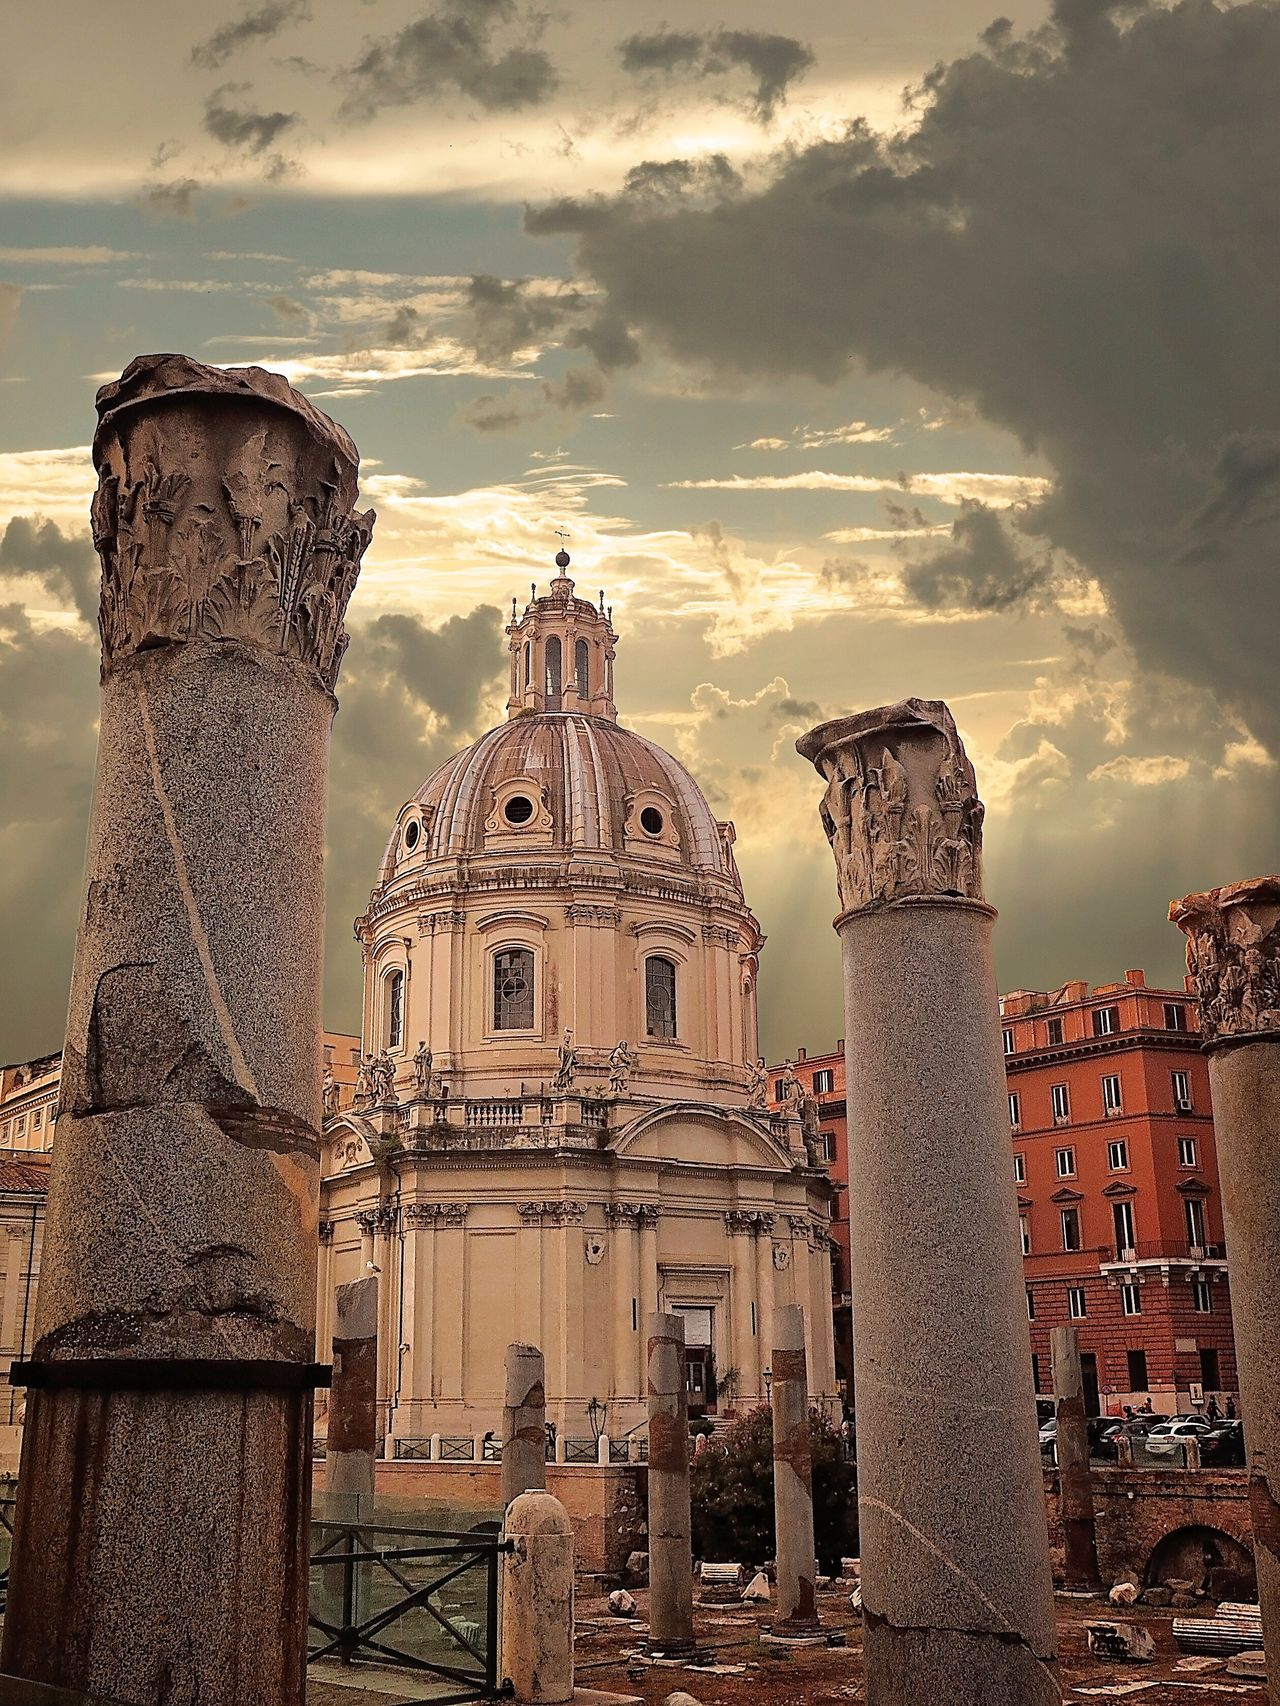 Ruins surrounding a church in rome Architecture Built Structure Building Exterior Spirituality Place Of Worship Religion Cathedral Sky Travel Destinations City Rome Roman Ruins Beautiful City Cloud - Sky Architectural Column History Famous Place Ancient Architecture Historic Architecture History Of Italy Italian History The Week Of Eyeem EyeEm Best Shots EyeEm Best Edits EyeEm Historical